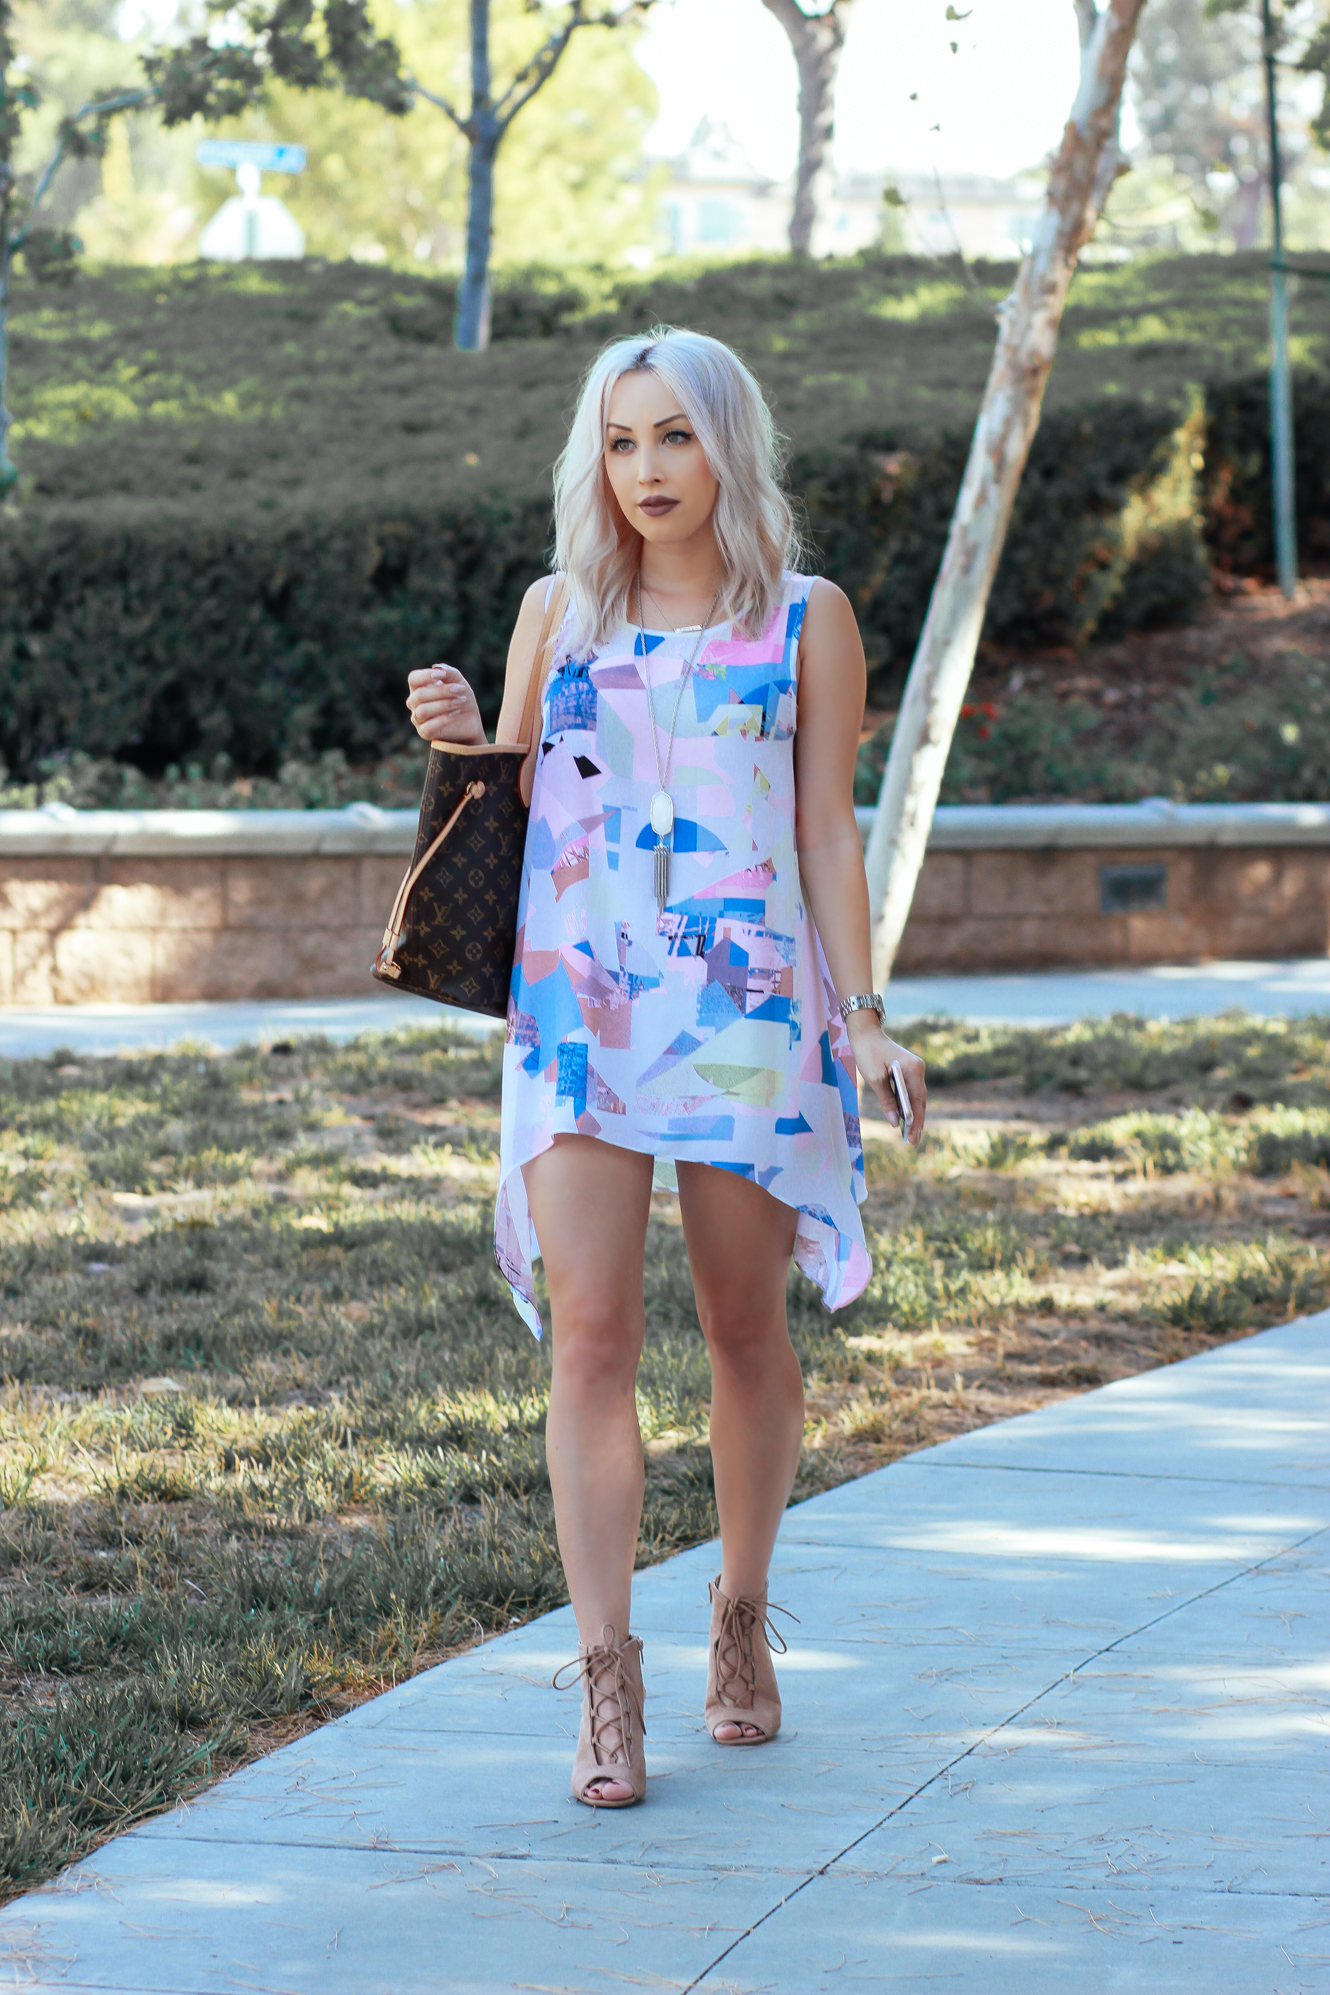 Blondie in the City | Vince Camuto Geometric Dress | Louis Vuitton Neverfull MM